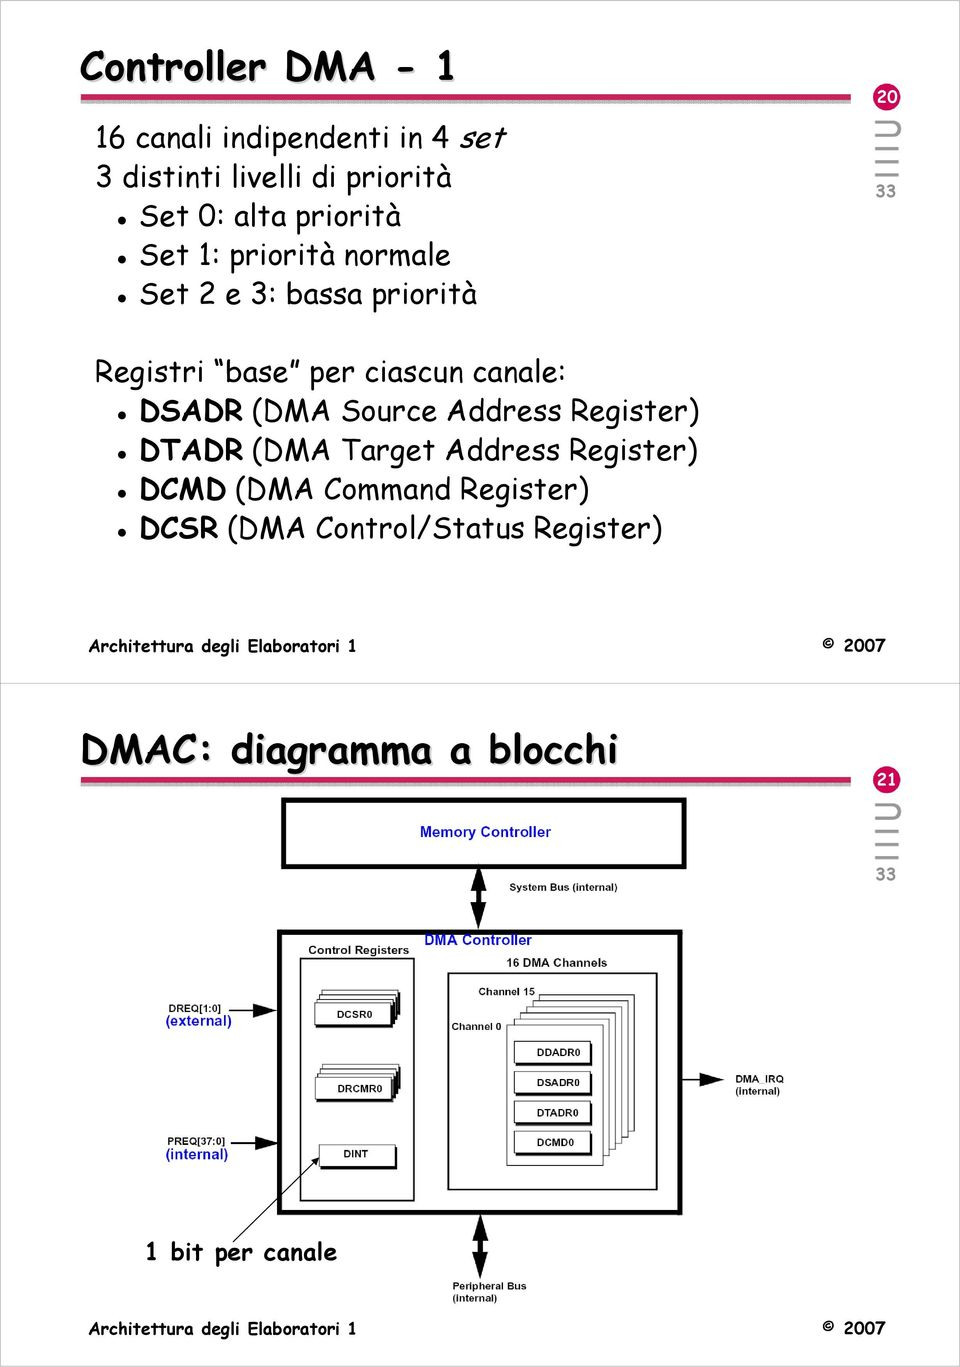 canale: DSADR (DMA Source Address Register) DTADR (DMA Target Address Register) DCMD (DMA